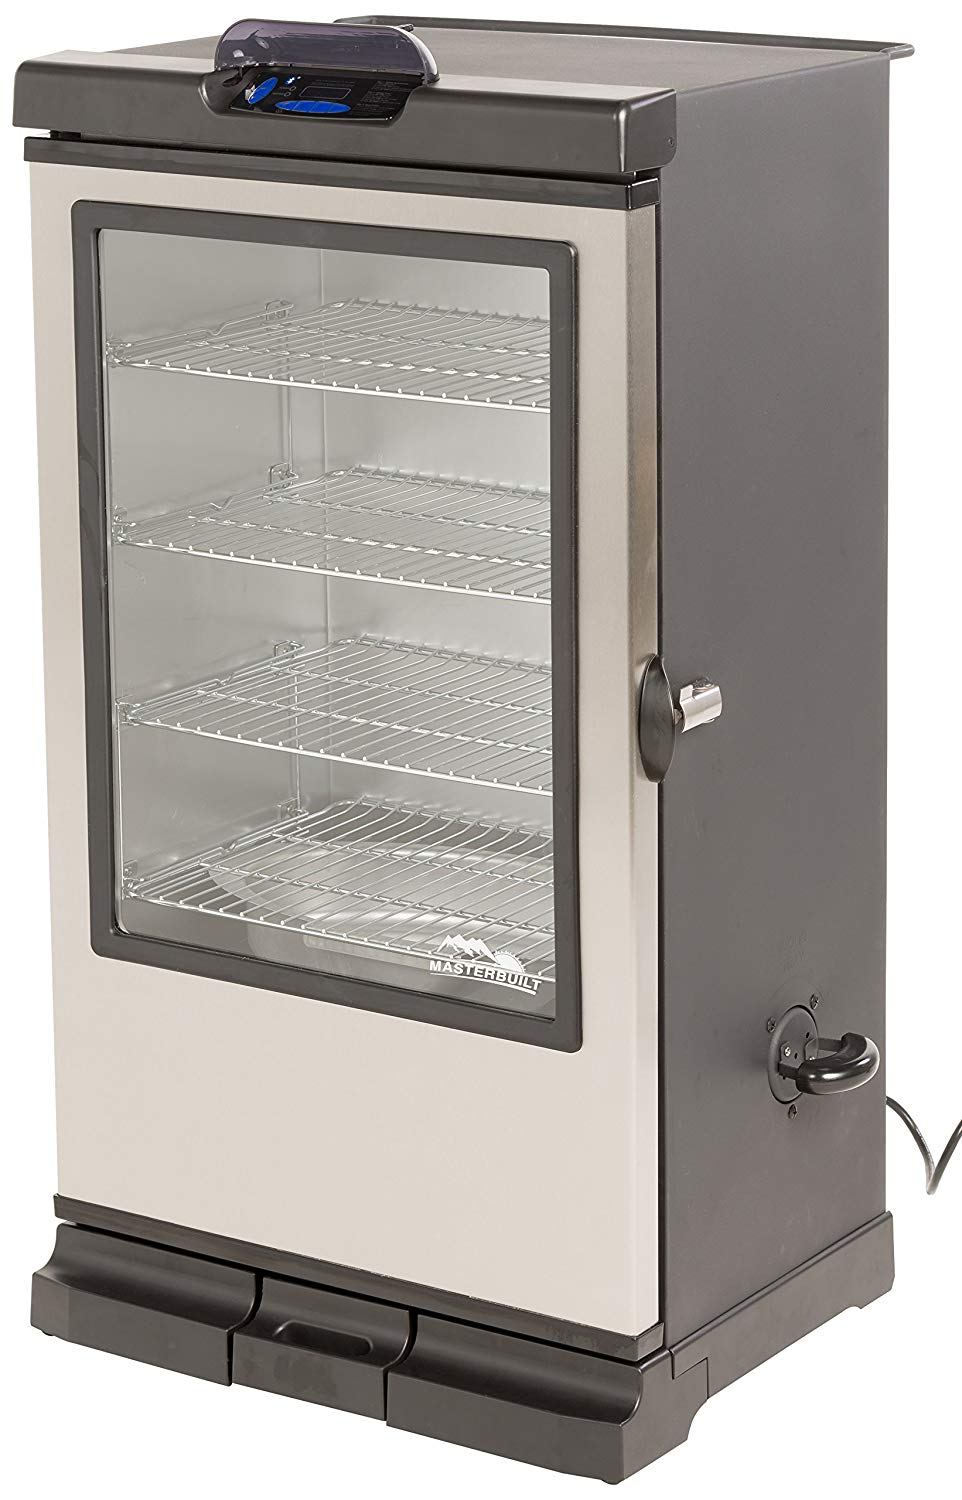 Smoke Hollow 26-Inch Electric Smoker with Adjustable Temperature Control